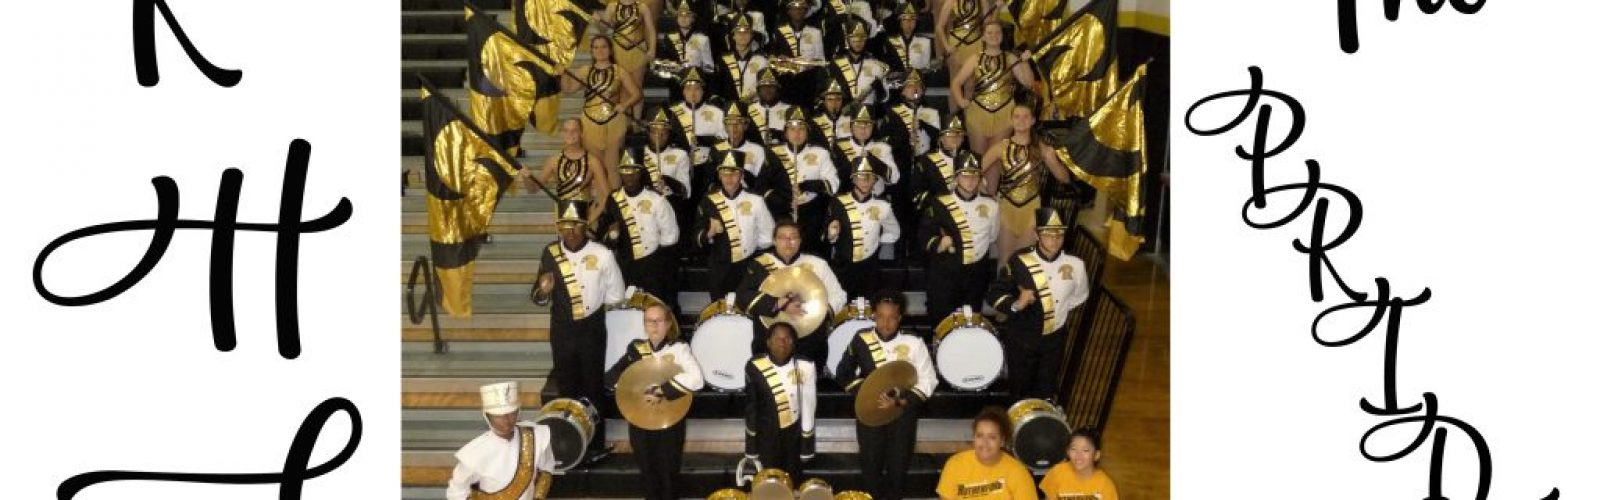 "the Rutherford High School Band ""The PRIDE"" Panama City FL."